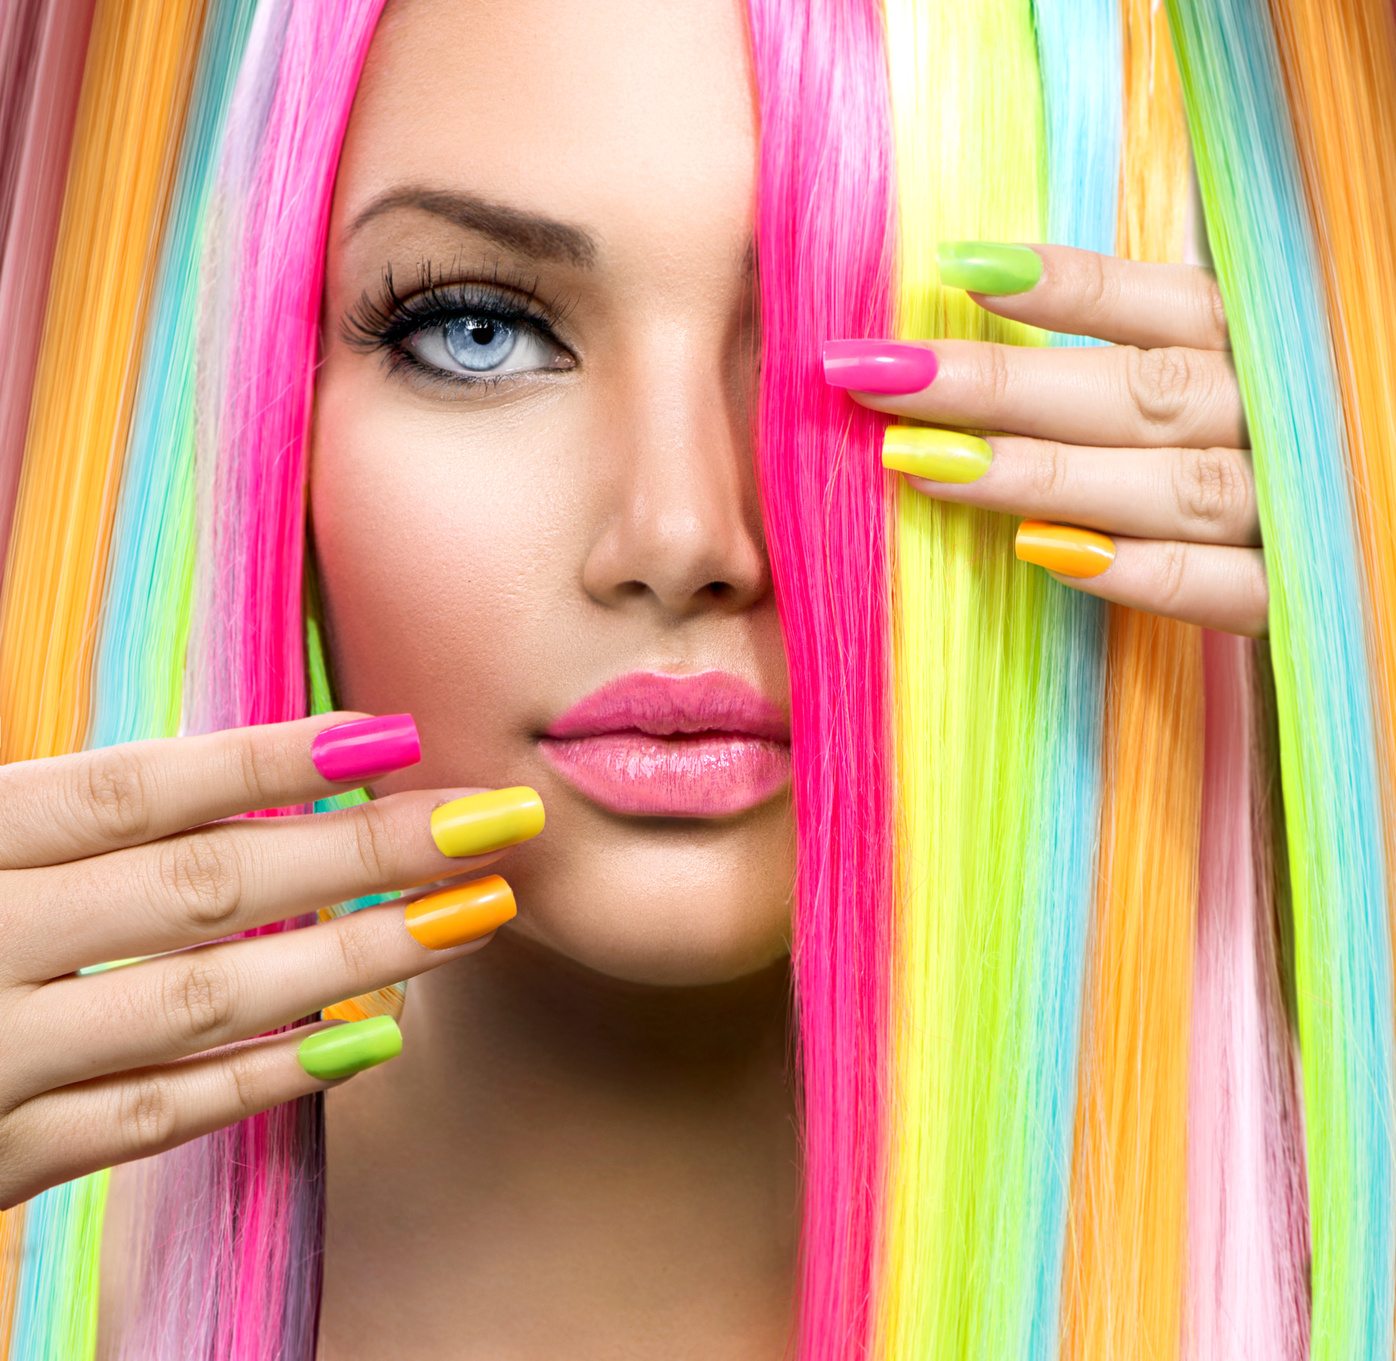 manicure spalicious manicure at annique day spa and